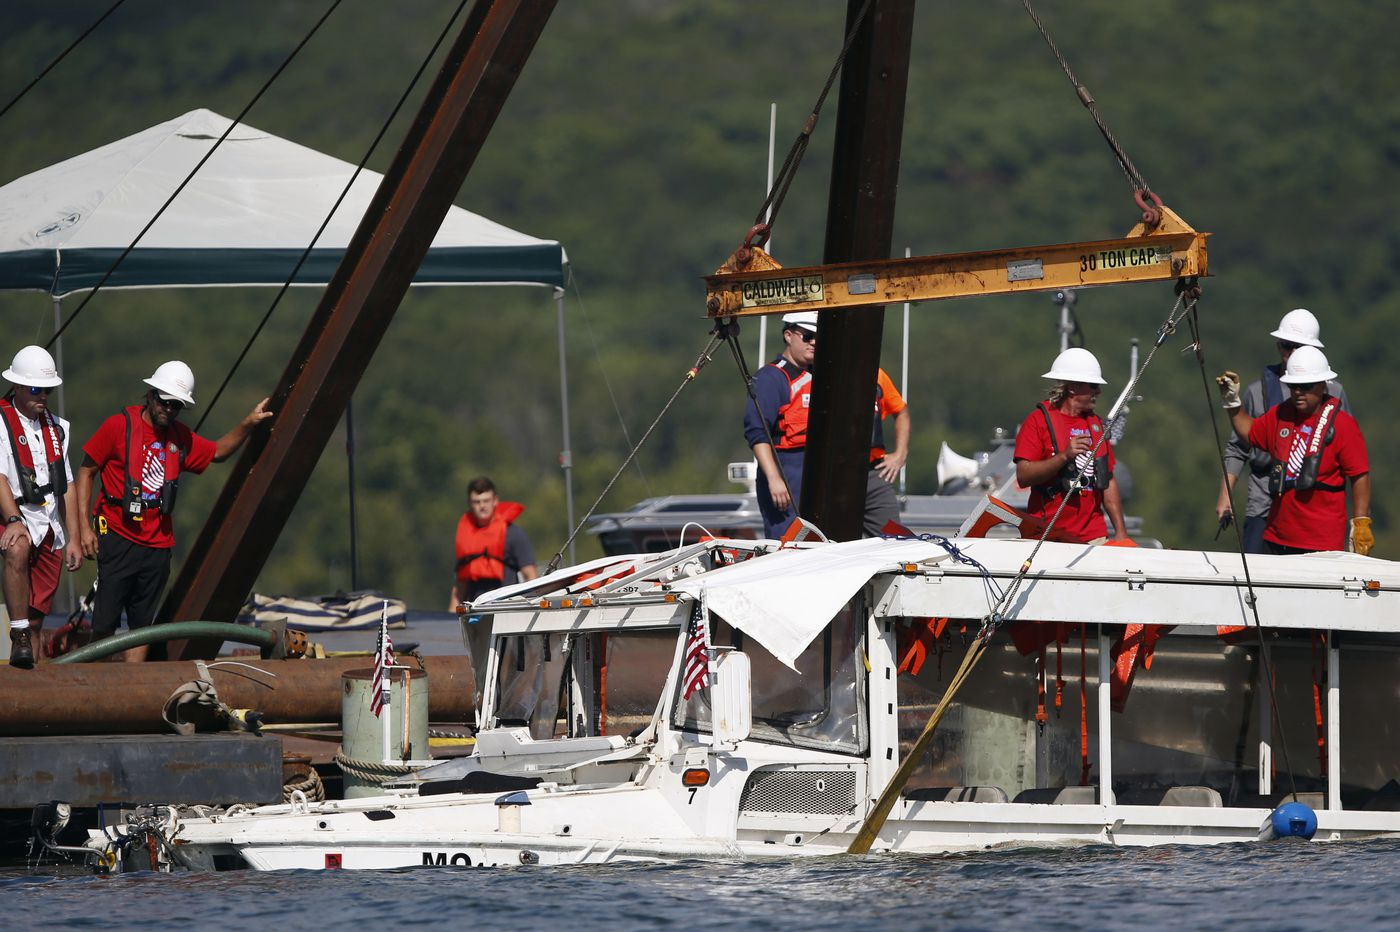 Captain in Missouri duck boat accident that killed 17 is charged with seaman's manslaughter